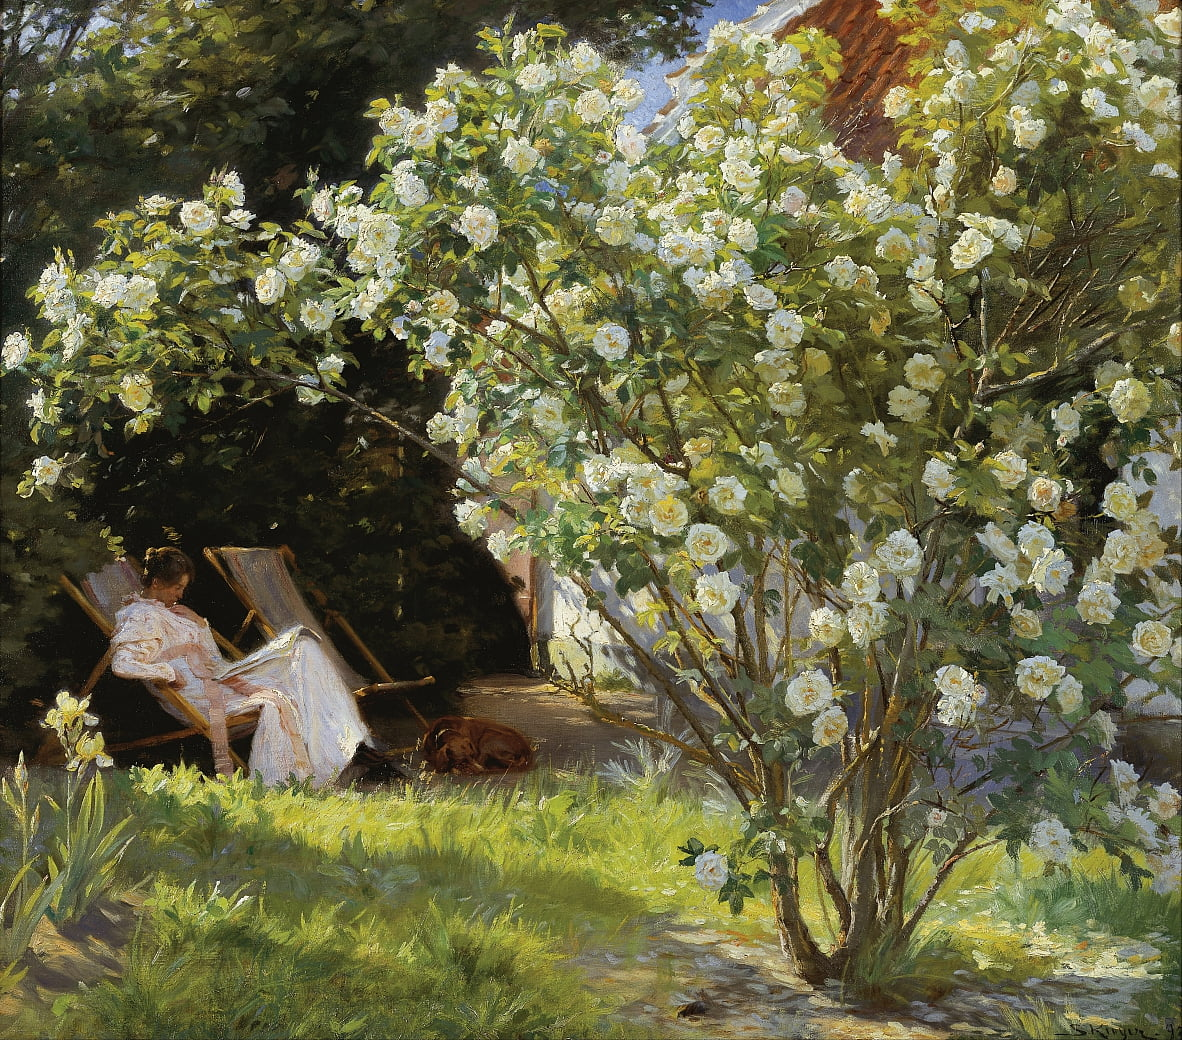 Marie Kroyer seated in the deckchair in the garden by Mrs Bendsens house by Peder Severin Krøyer